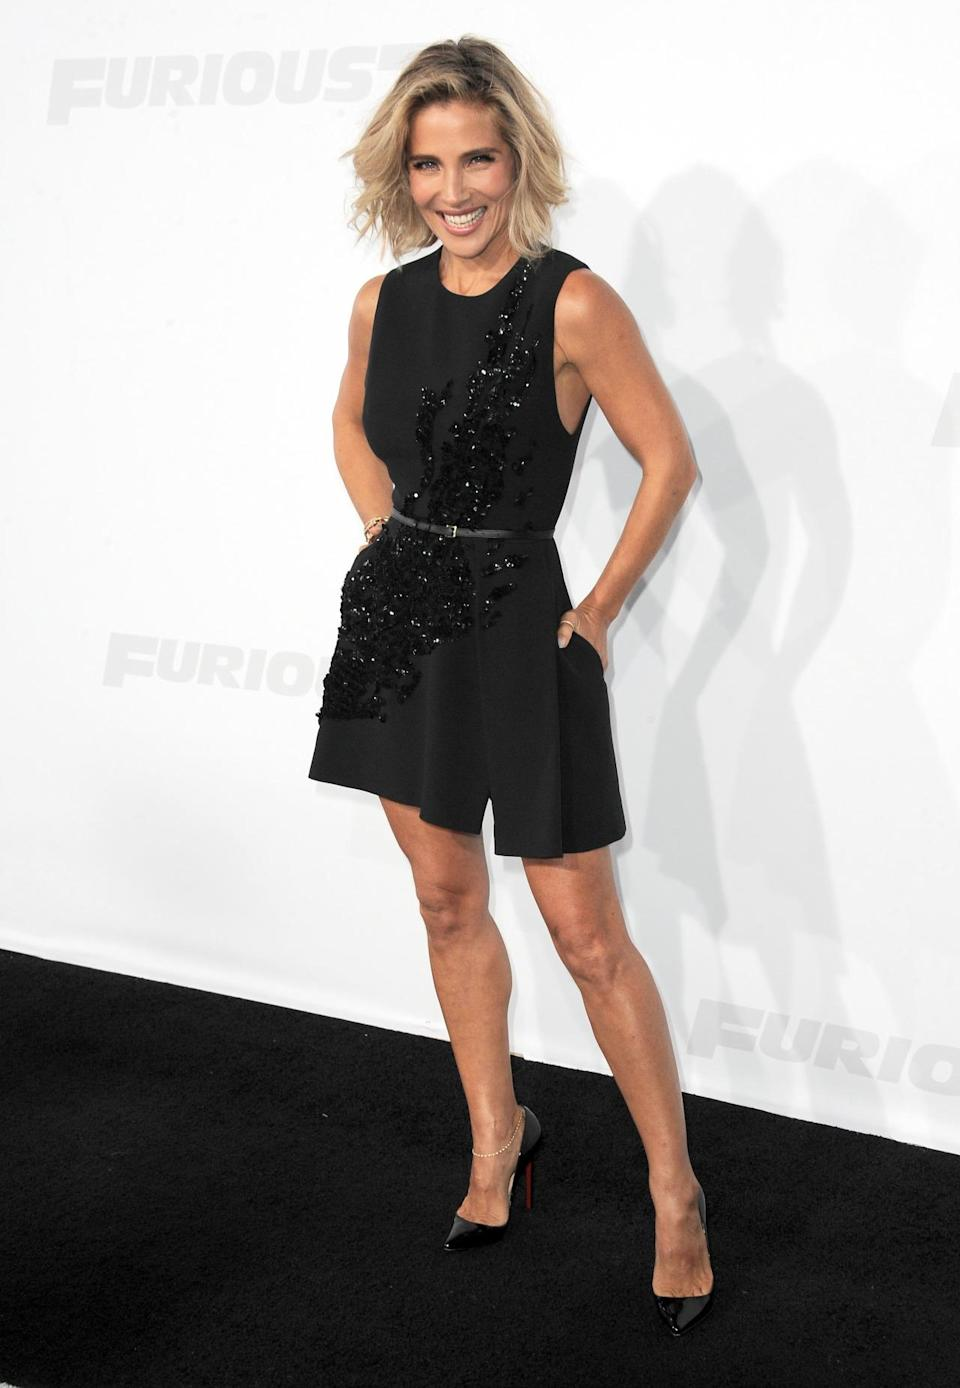 Elsa Pataky, wife of Thor (aka Chris Hemsworth) and mother of three, was fun and flirty in an Elie Saab black number. The LBD is elevated with diagonal sequin detailing and the outfit even more so with her classic patent leather Louboutins.